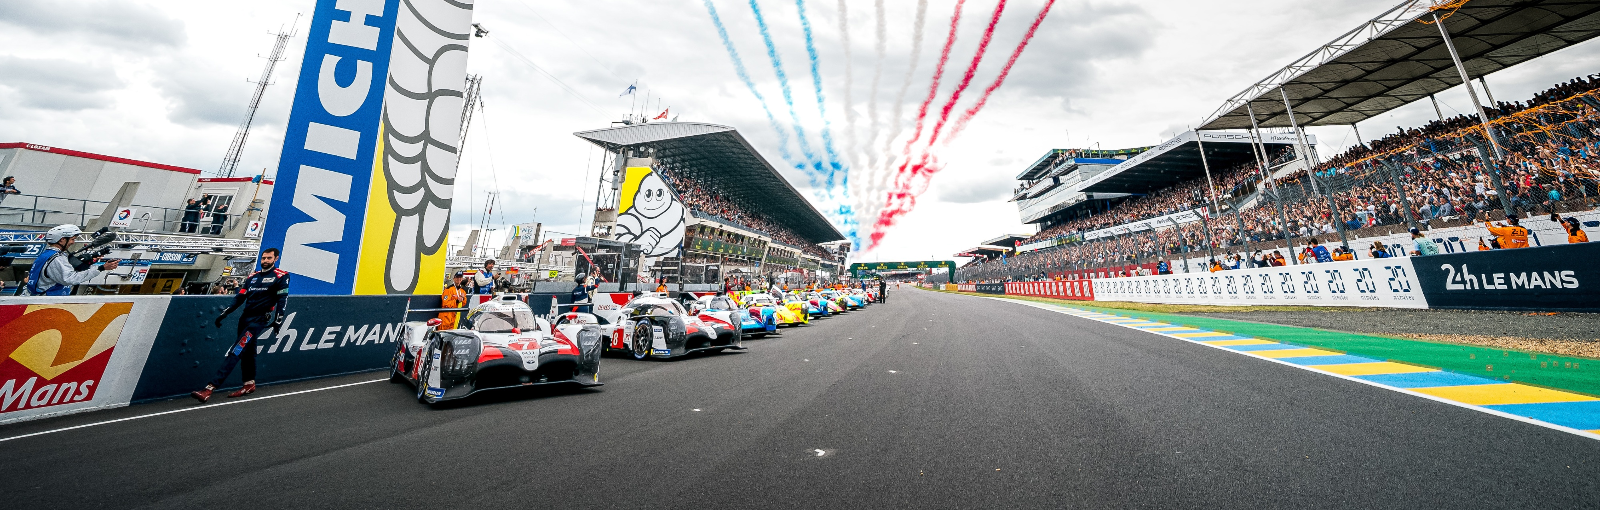 24 Hours of Le Mans 2020: Postponment on 19 and 20 September